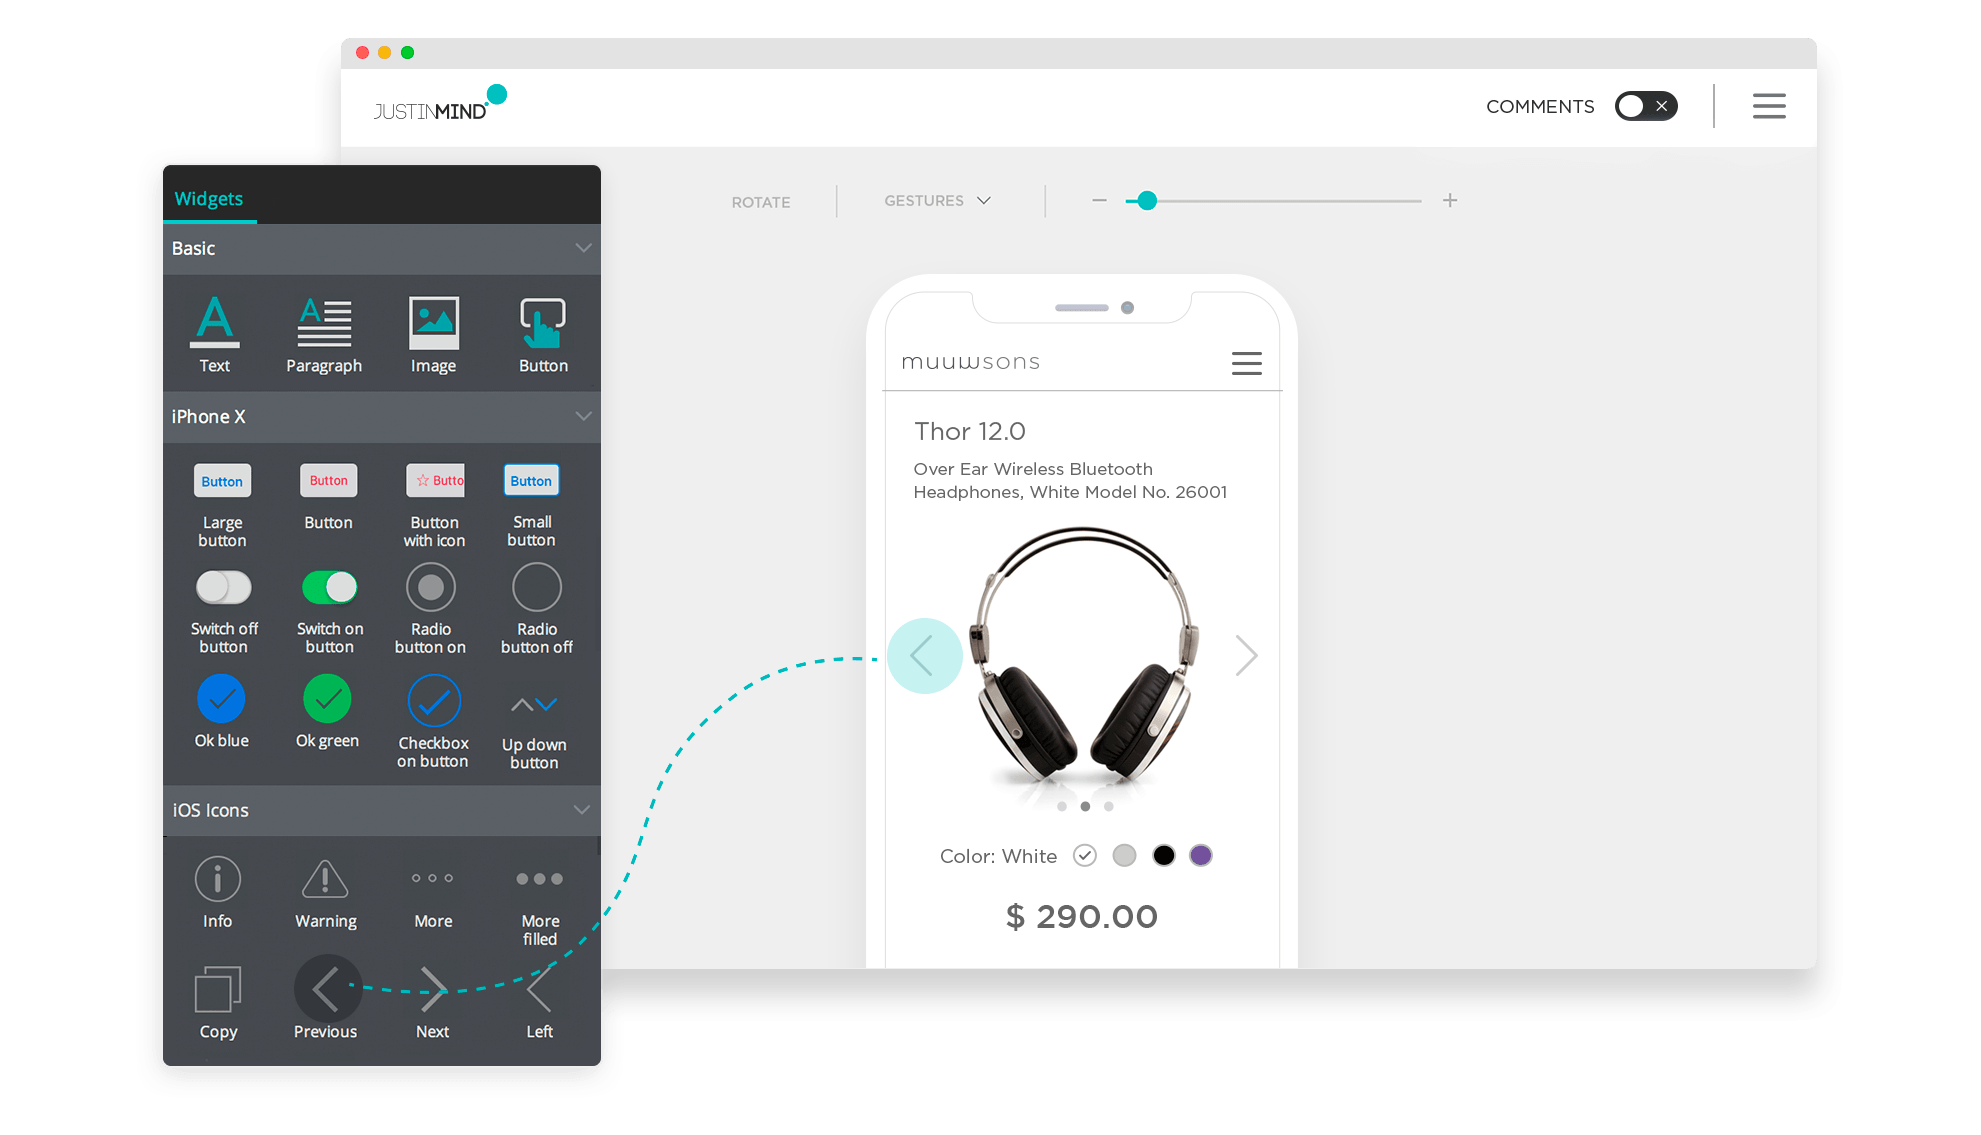 4000+ UI elements for prototyping